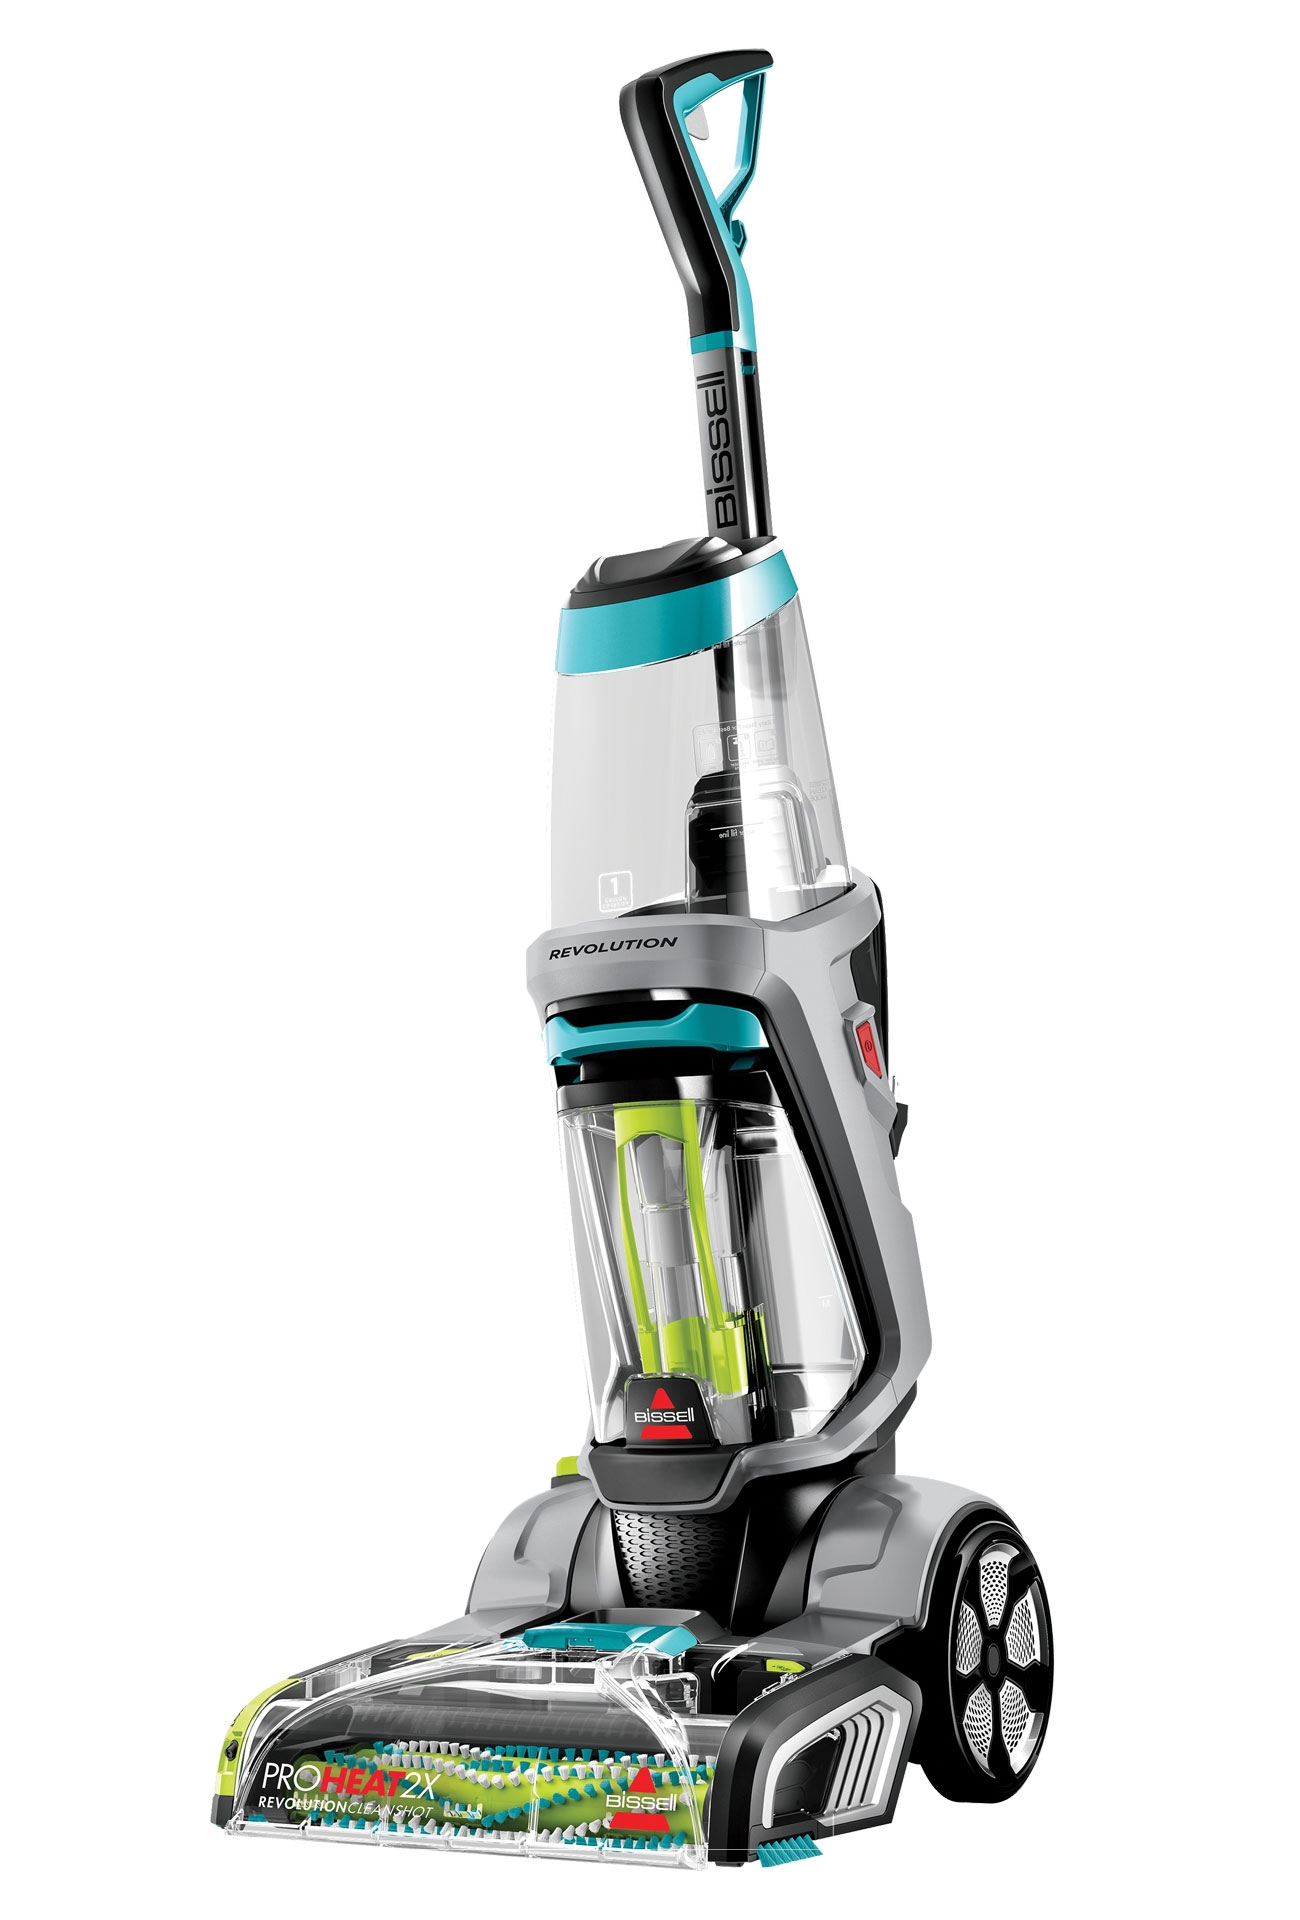 Bissell ProHeat 2X Revolution CleanShot Carpet Cleaner